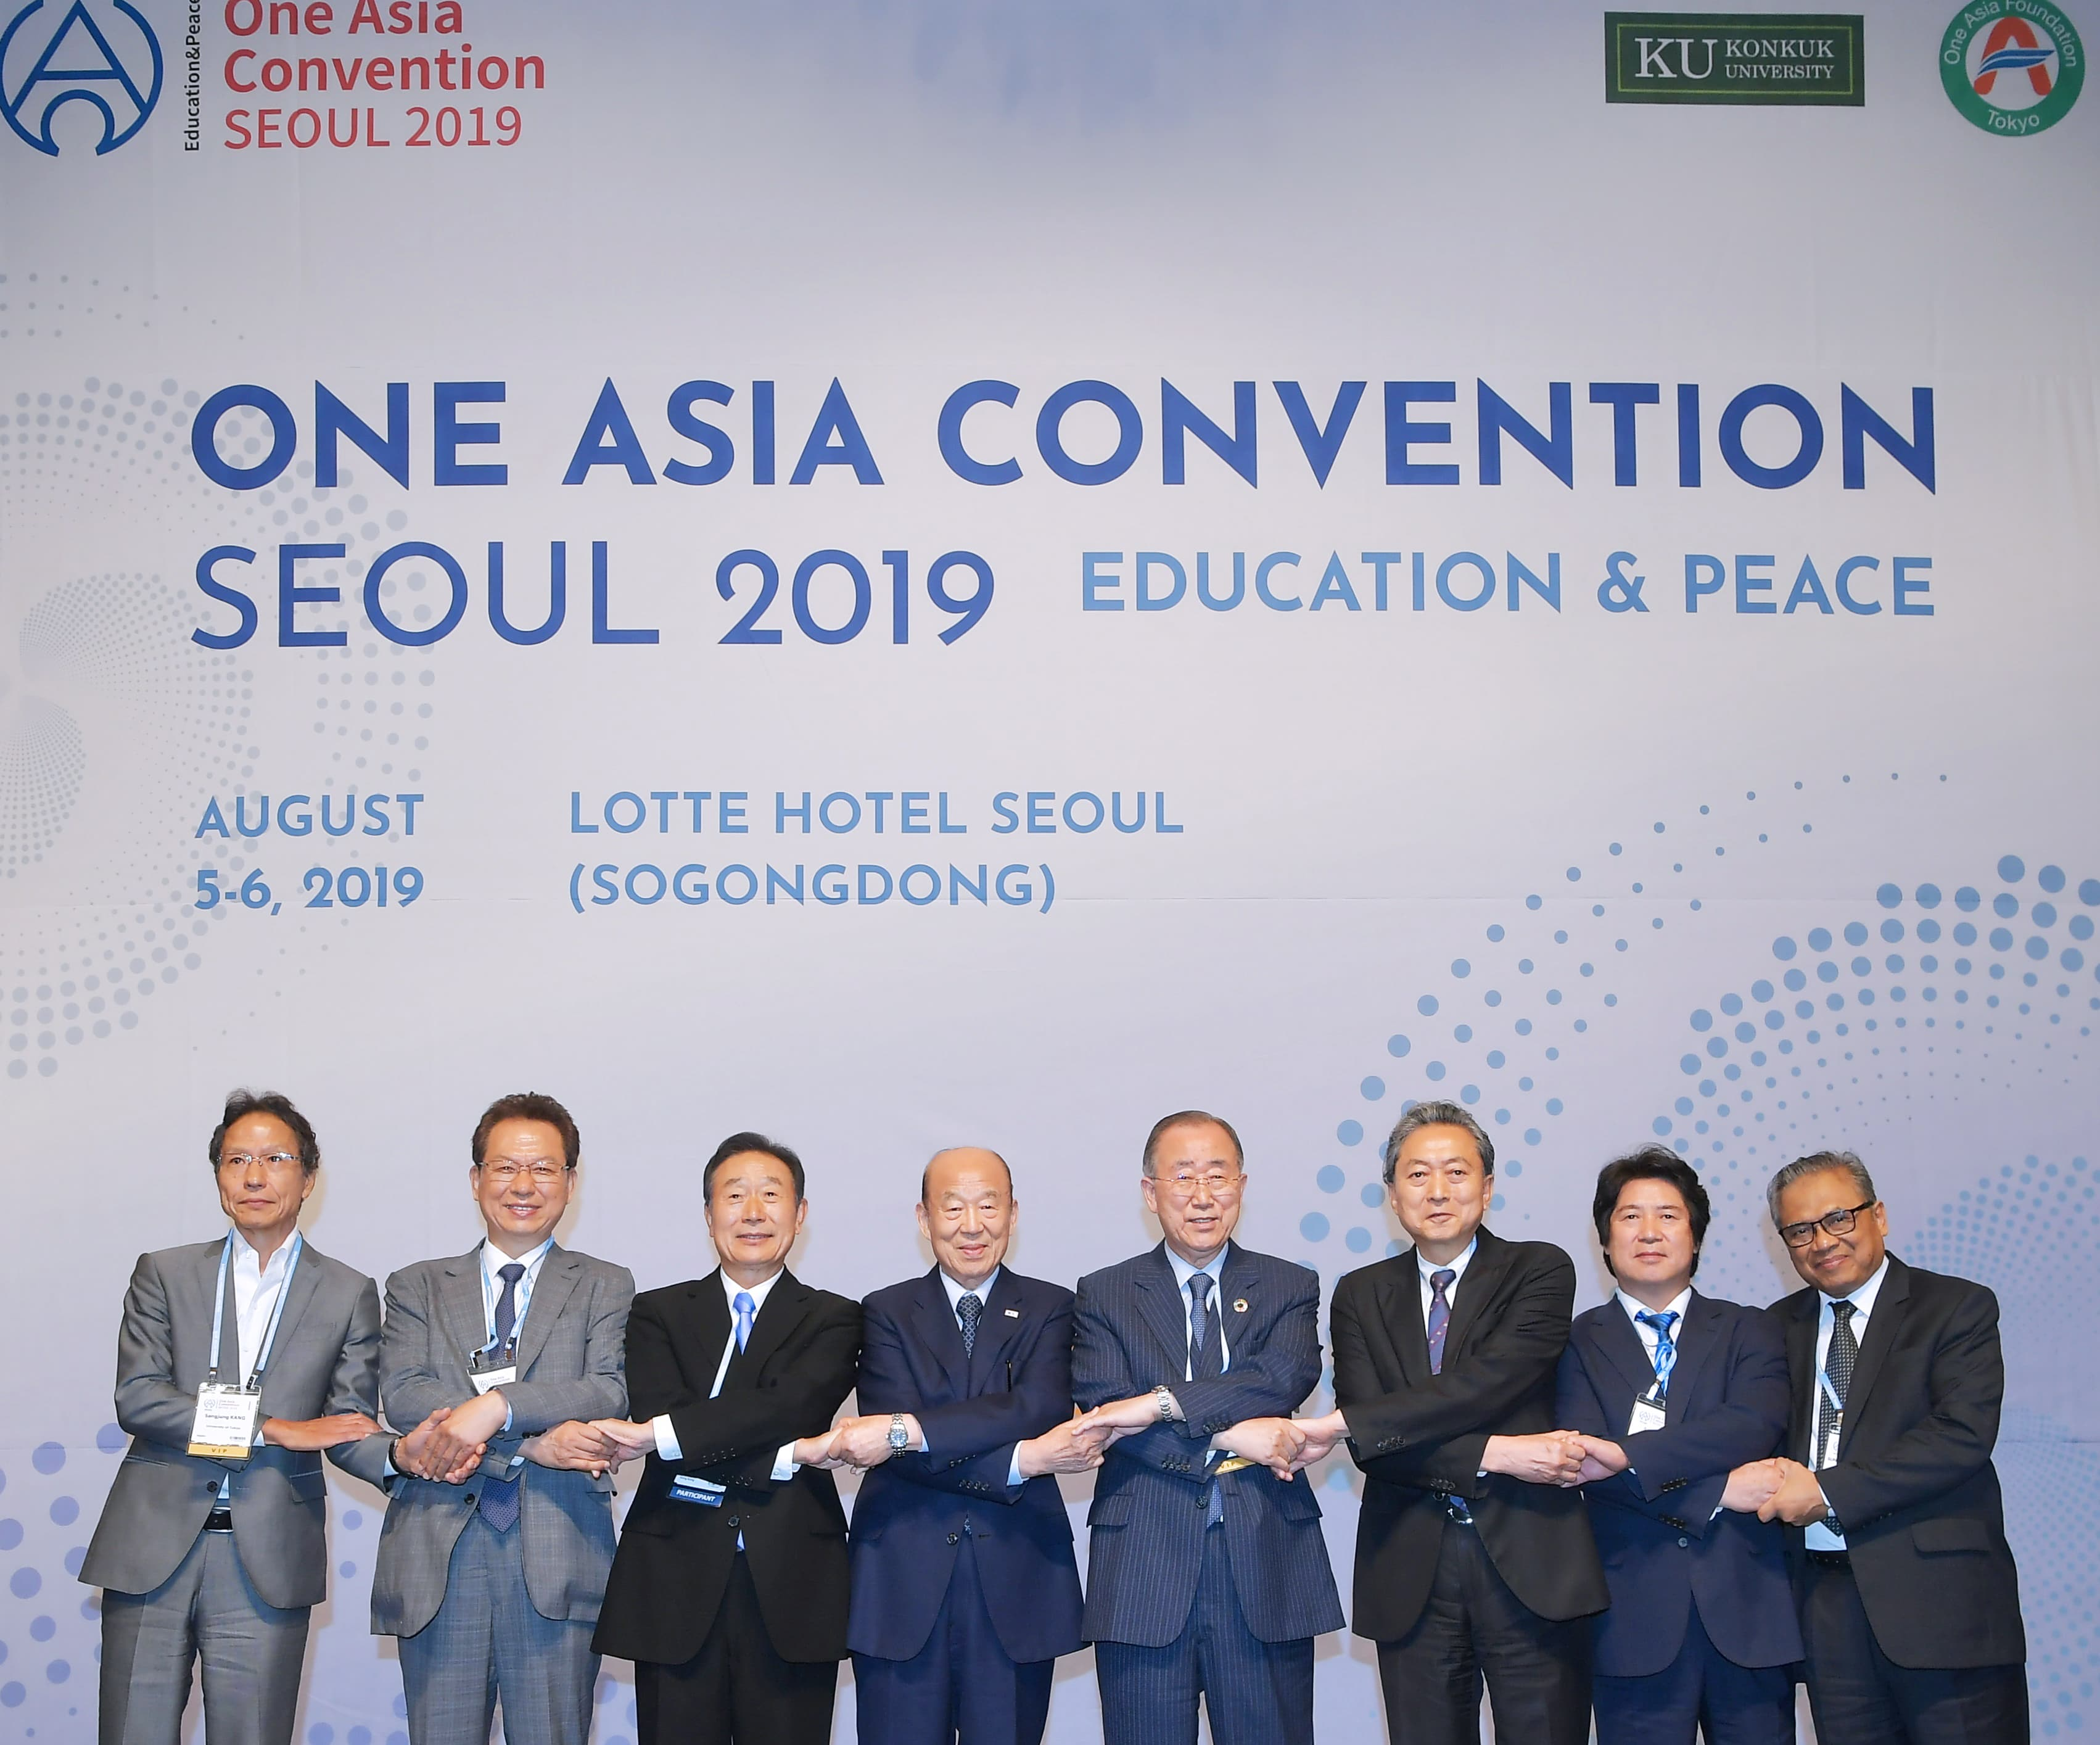 KU One Asia Foundation 2019